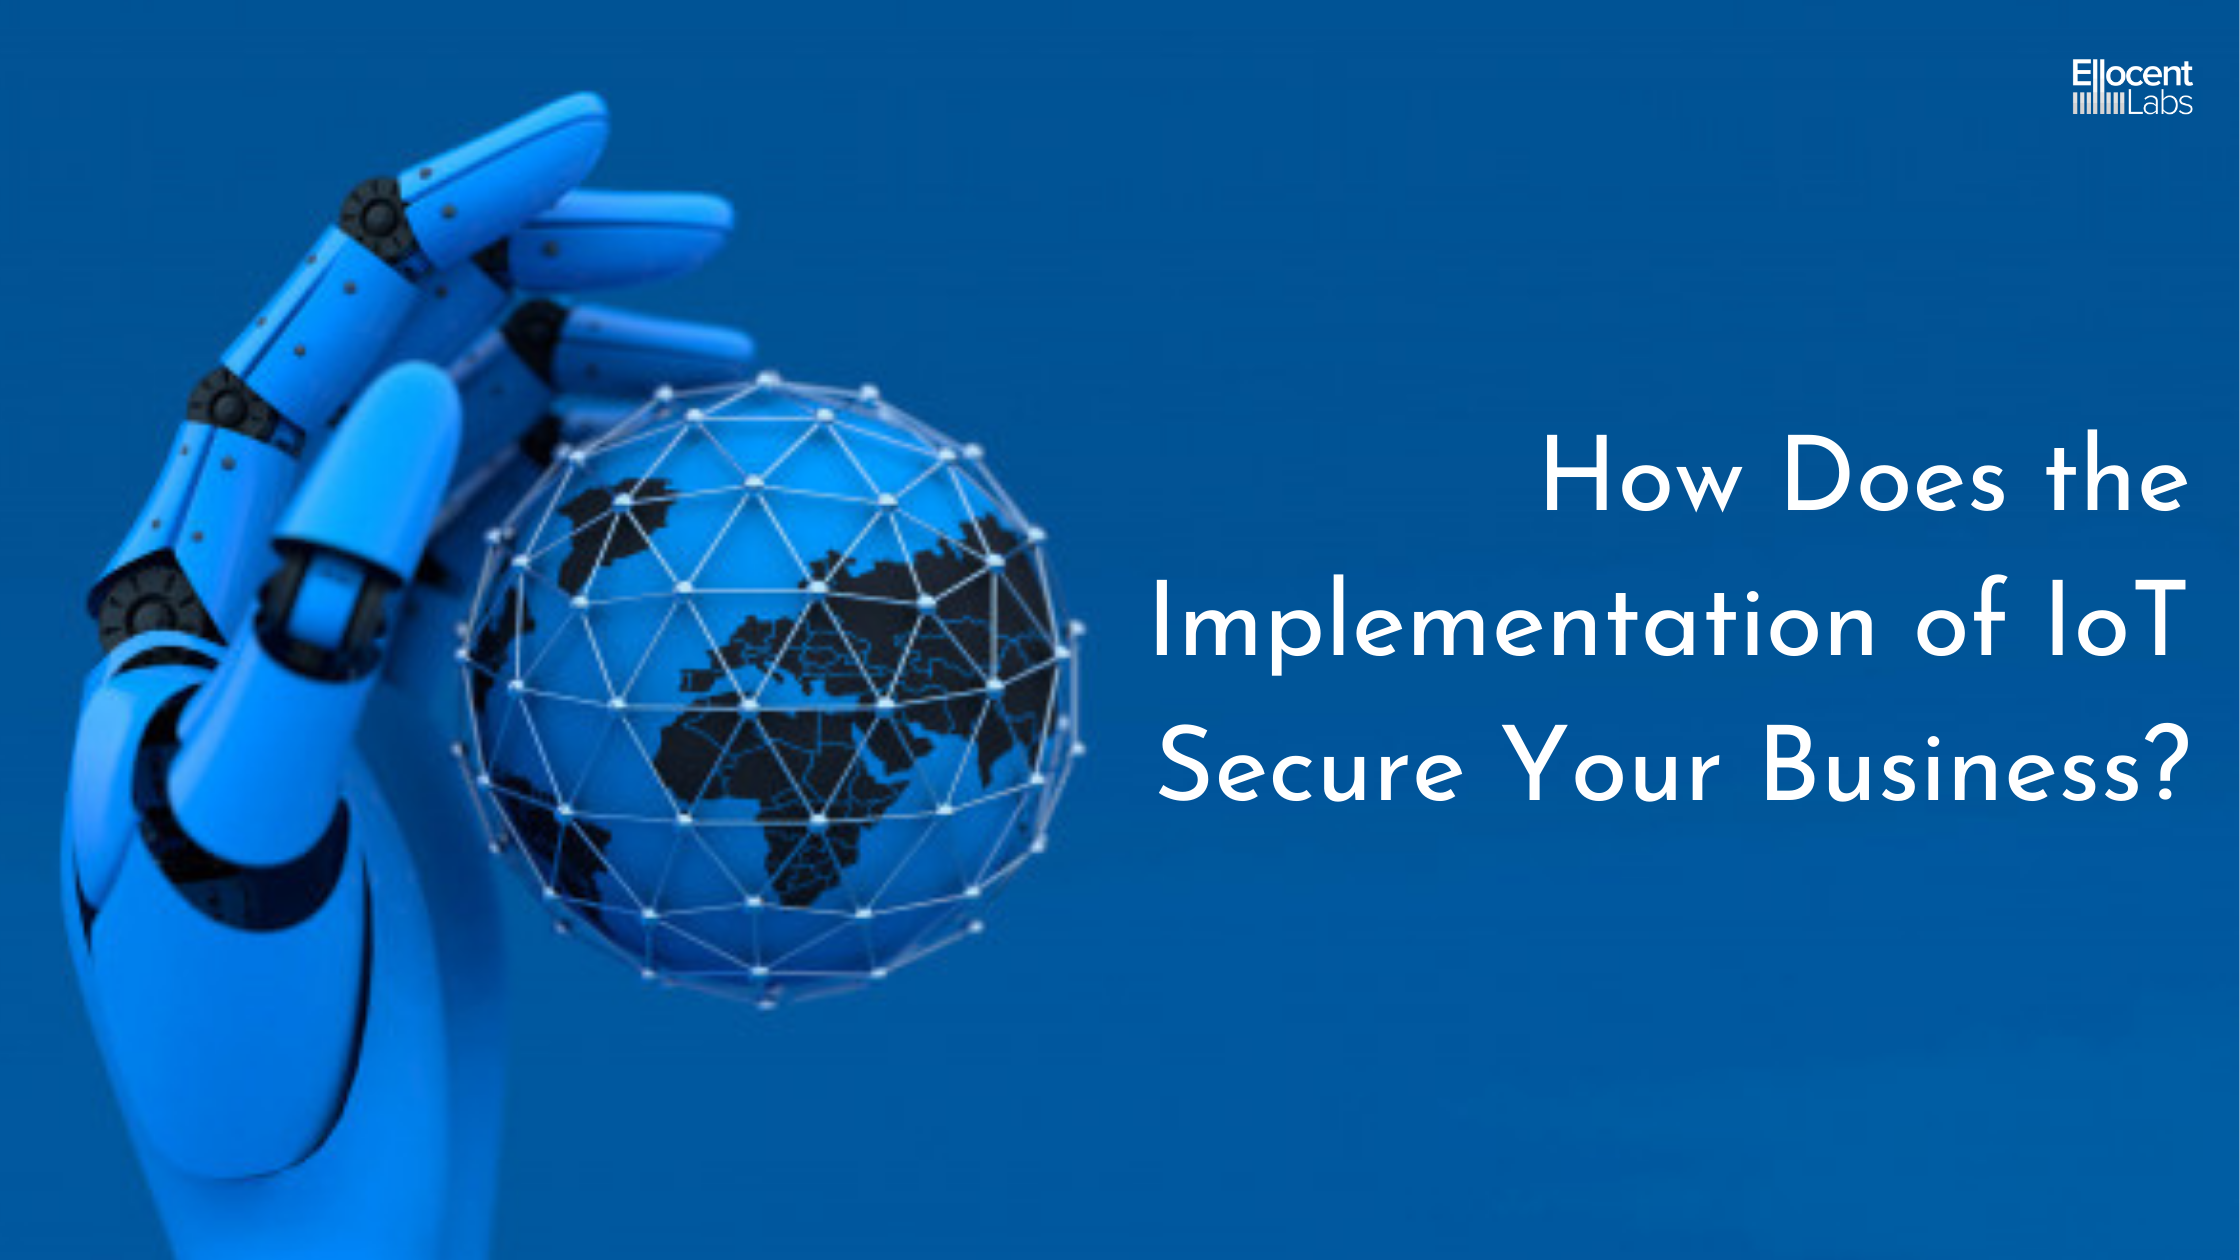 How Does the Implementation of IoT Secure Your Business?